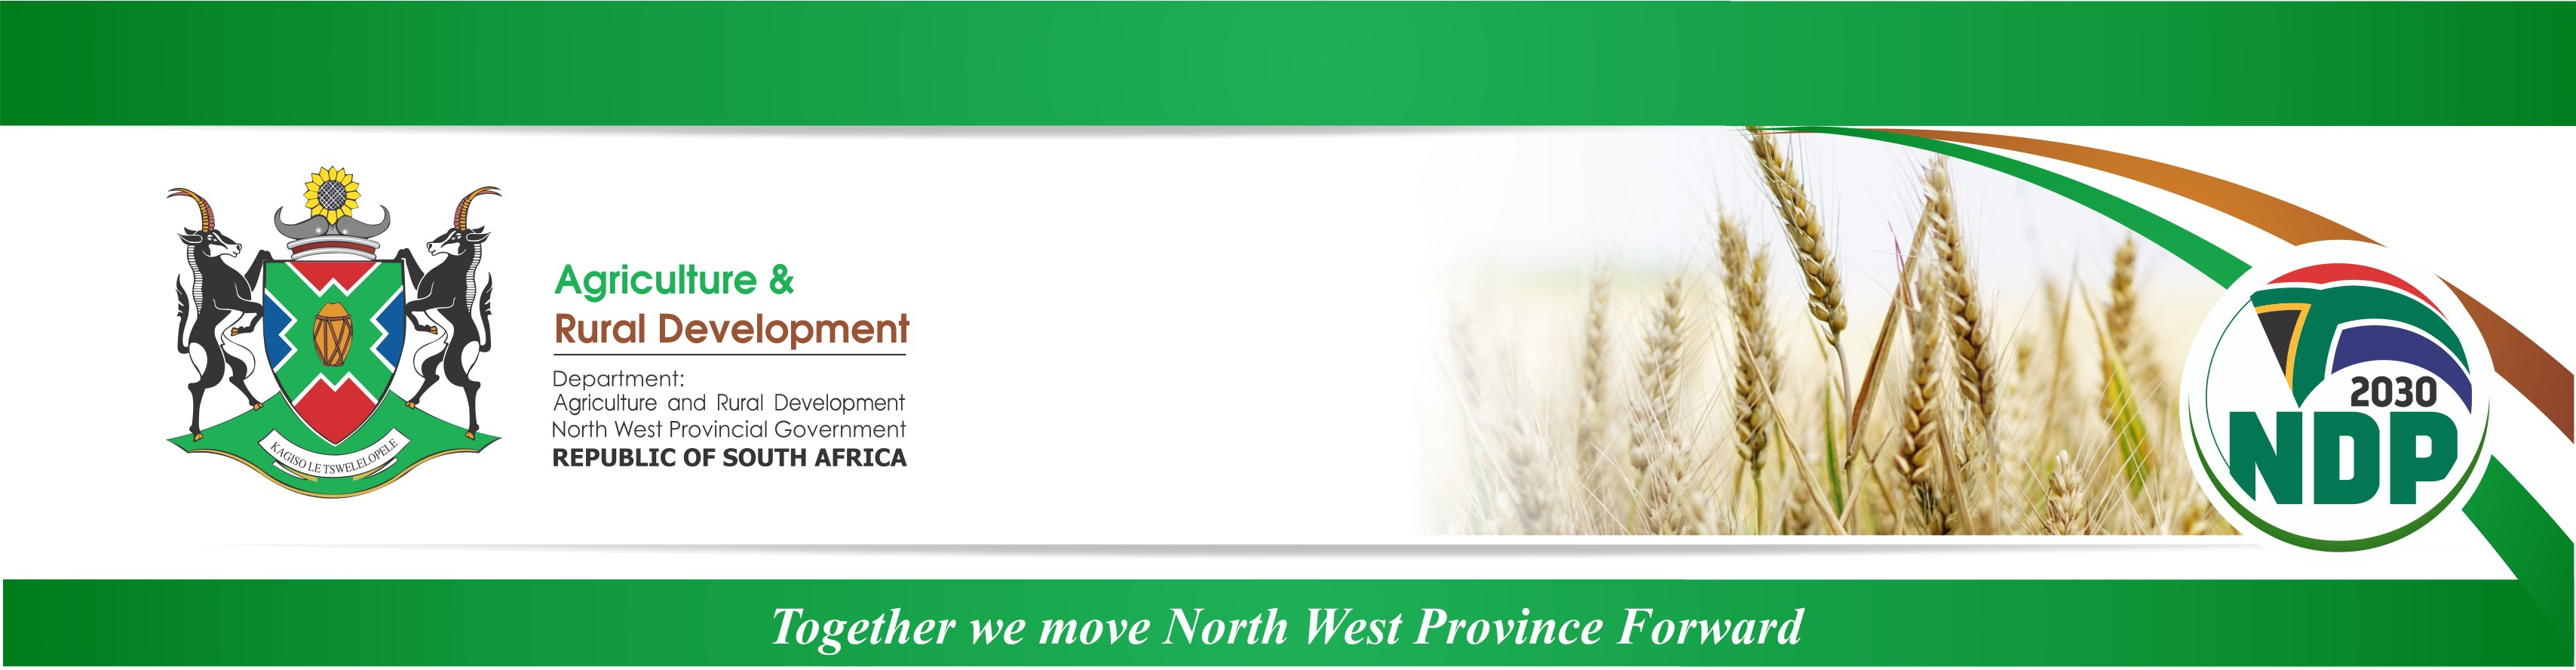 North West Department of Agriculture and Rural Development